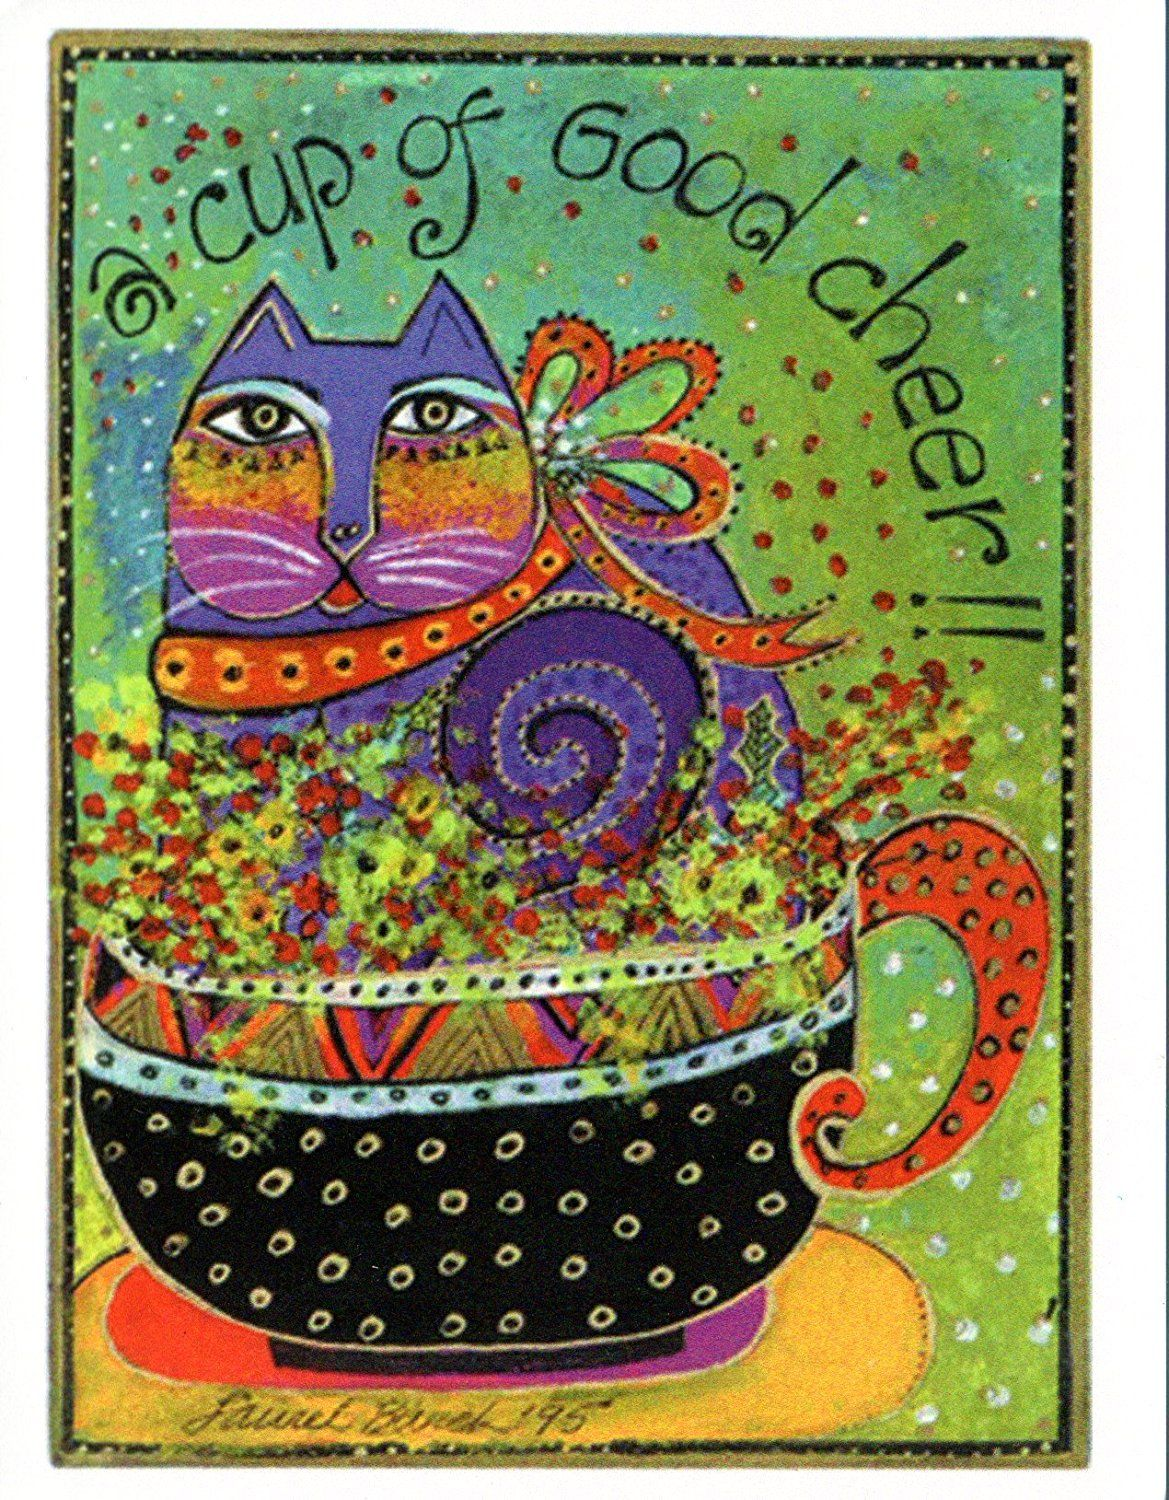 Laurel burch greeted note card assortment by leanin tree